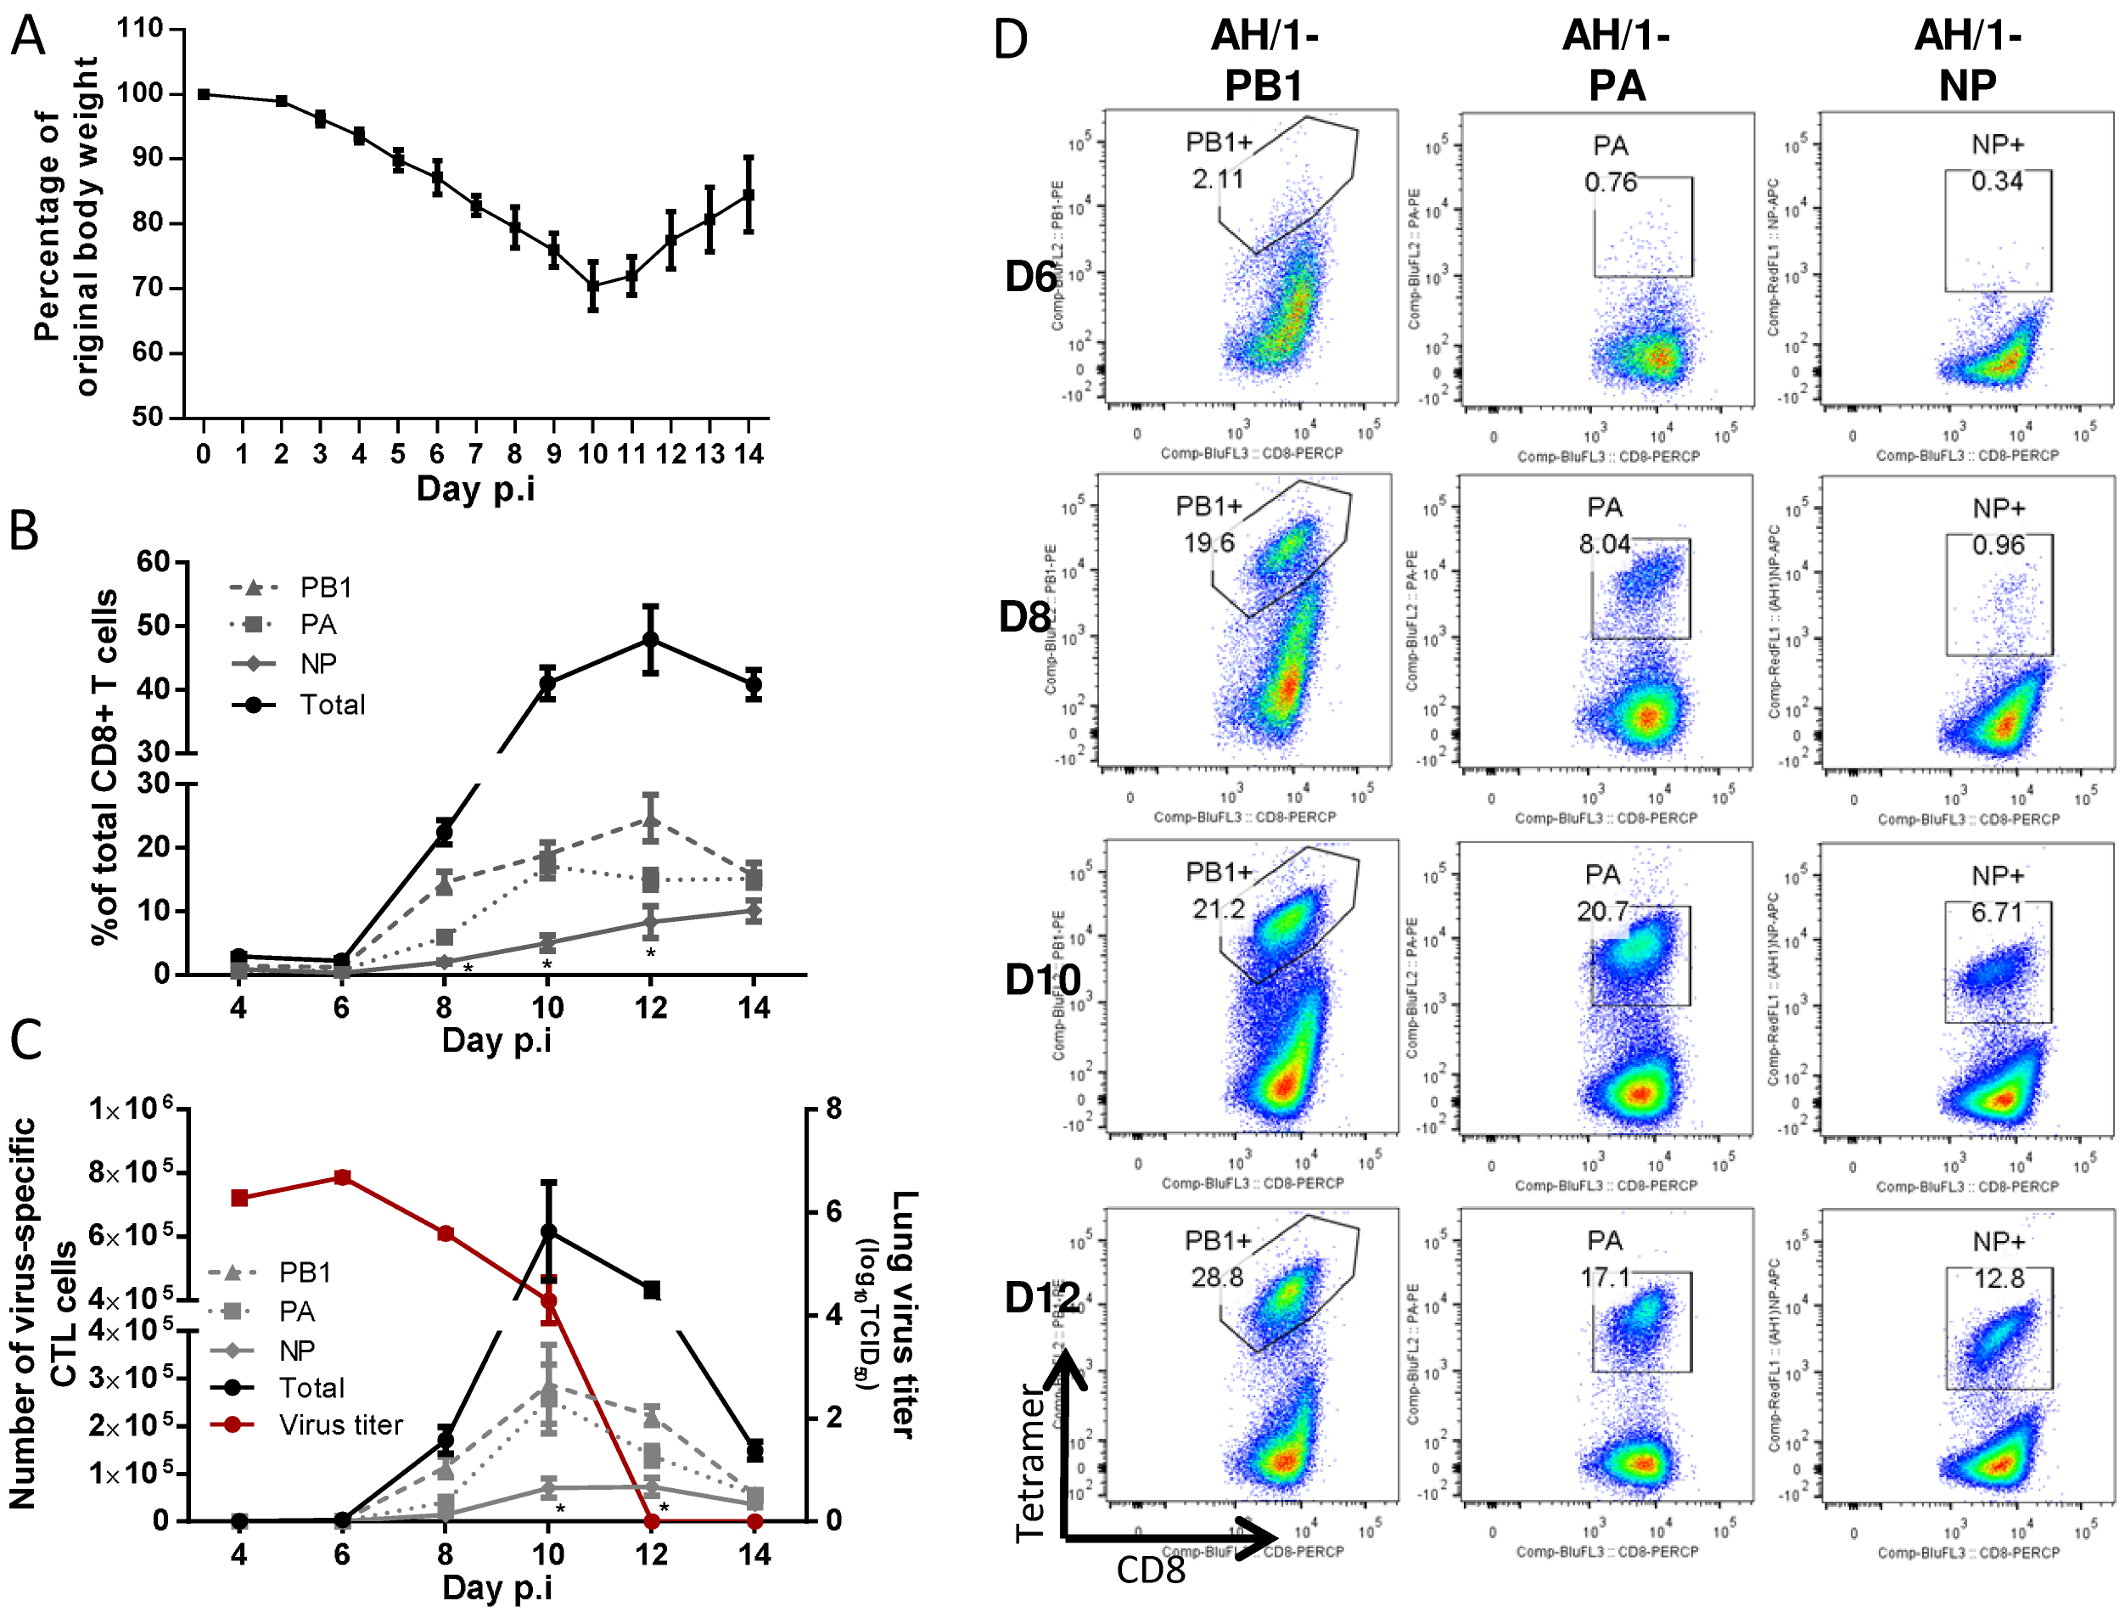 The disease course and primary CTL responses in naive mice after infection with the H7N9 IAV.